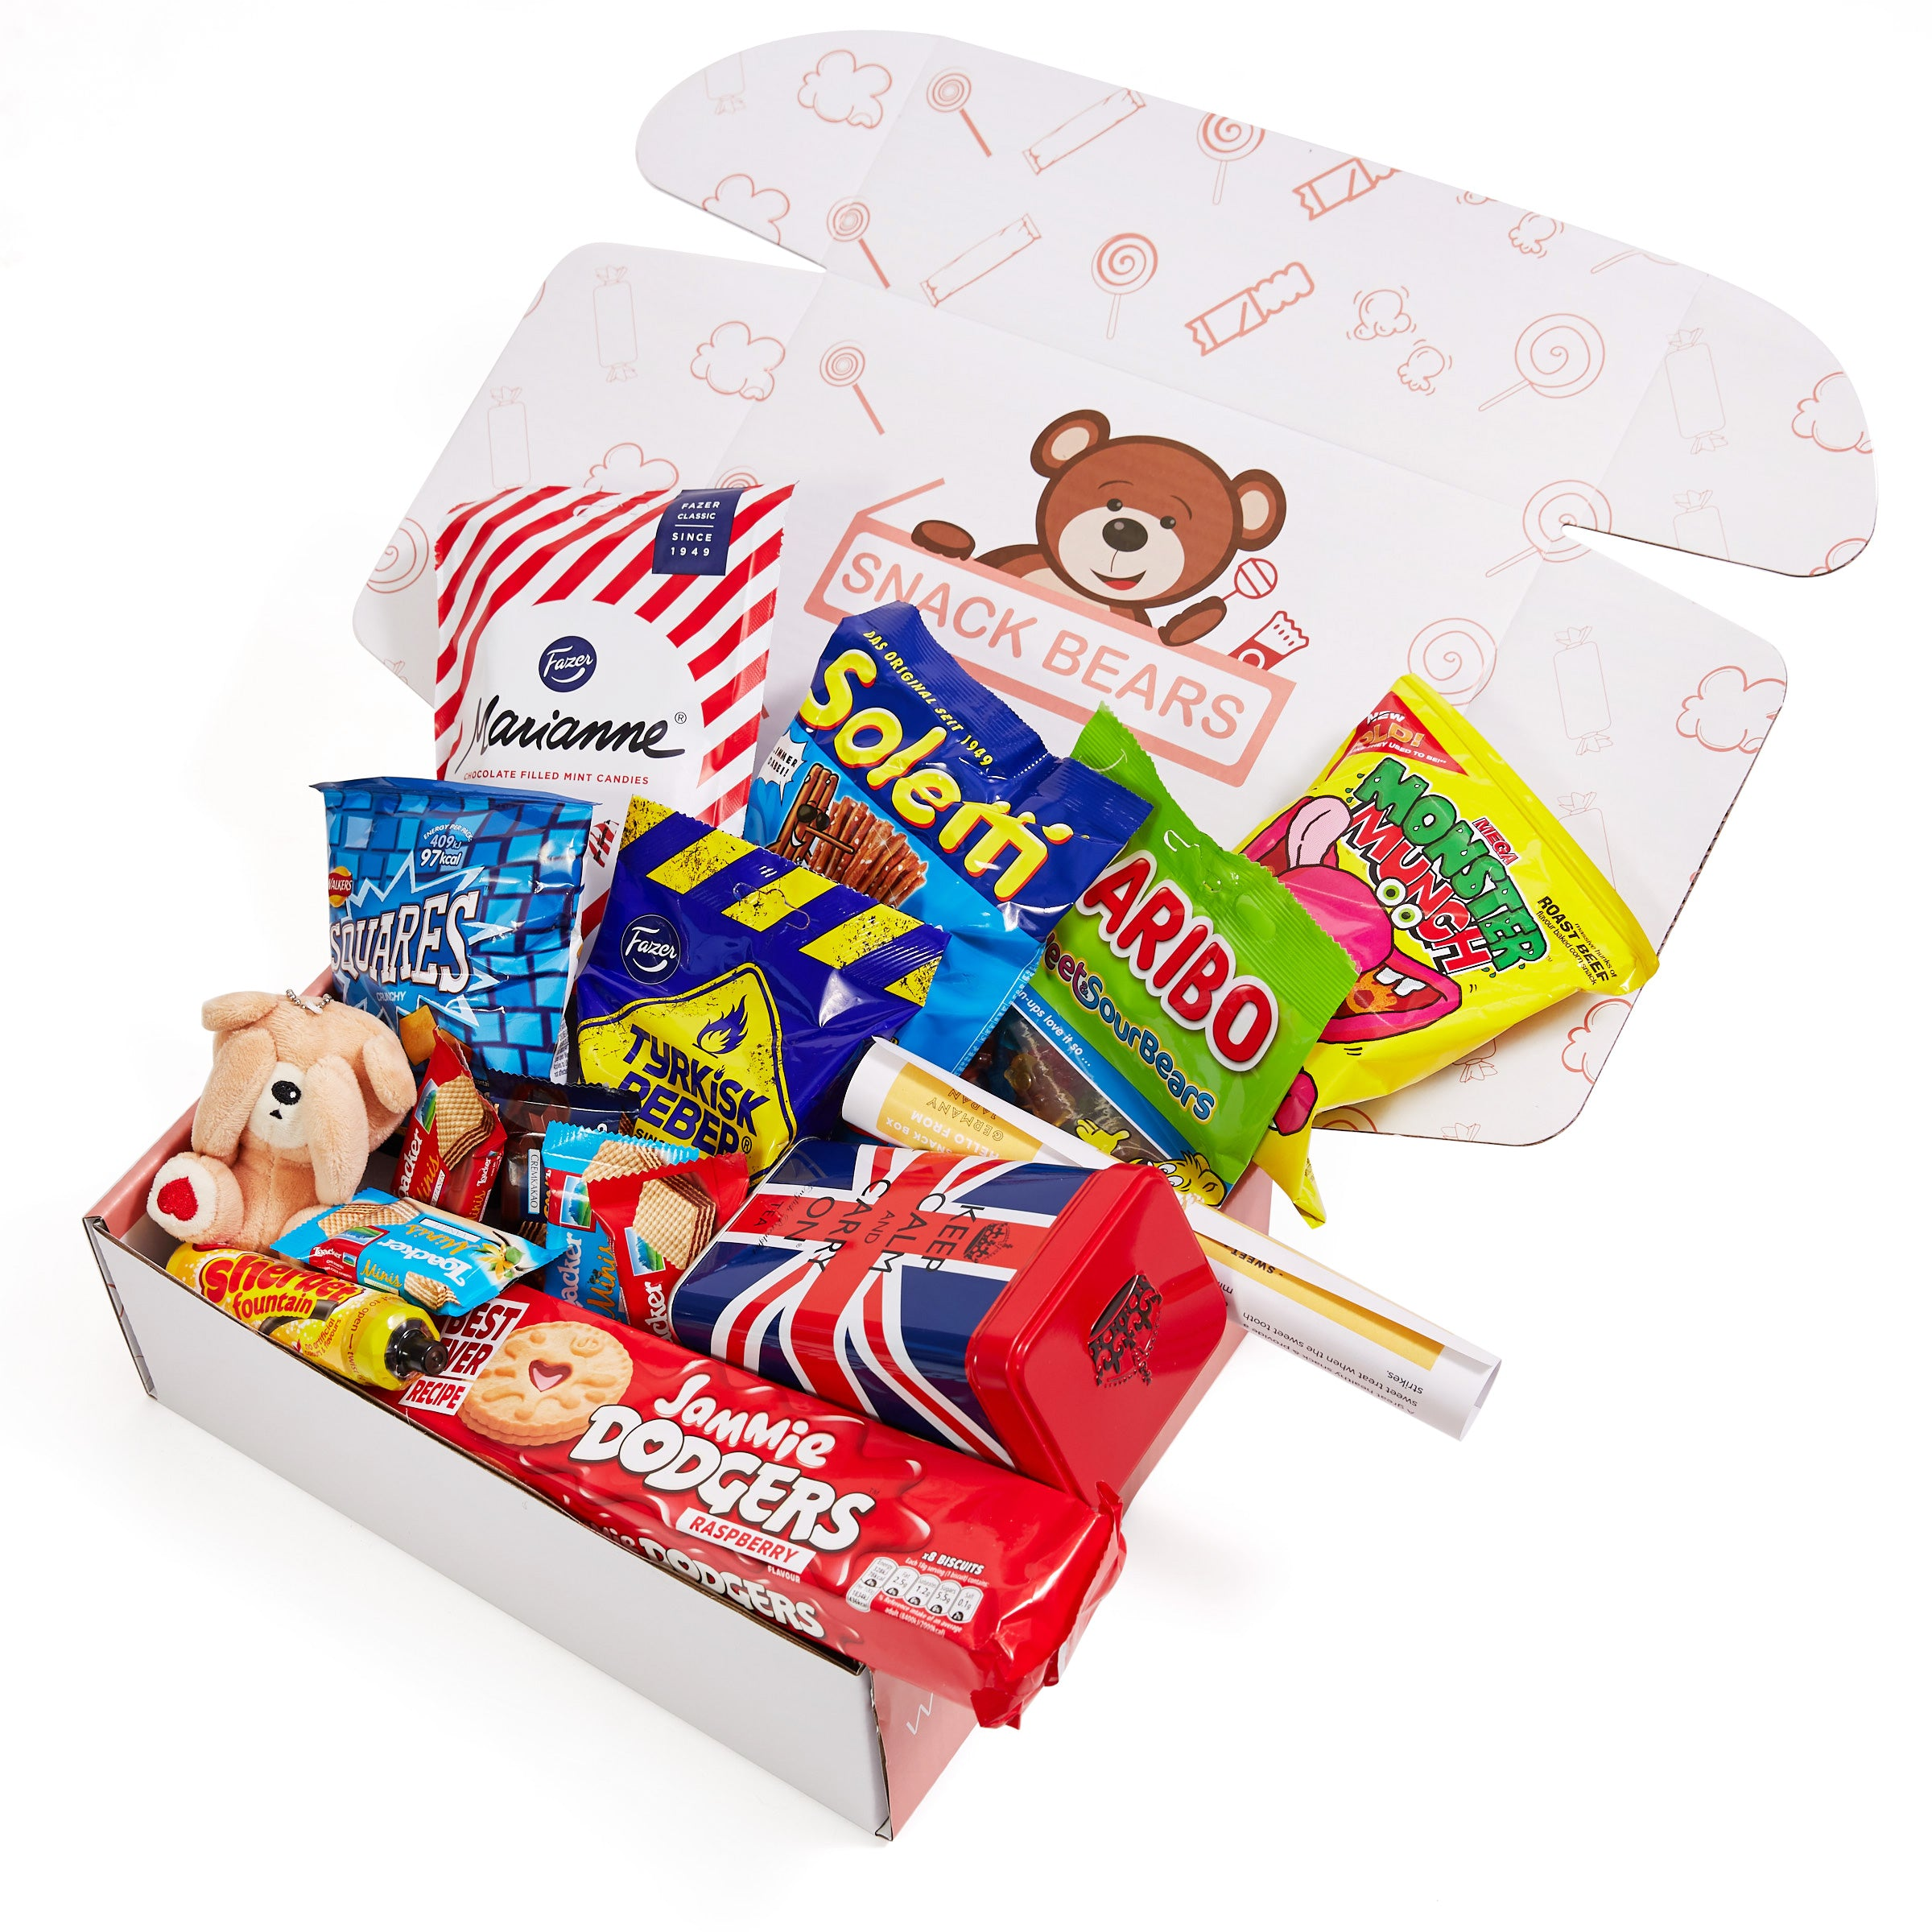 A box of European snacks such as the UK, Finland, Germany and Austria snacks.